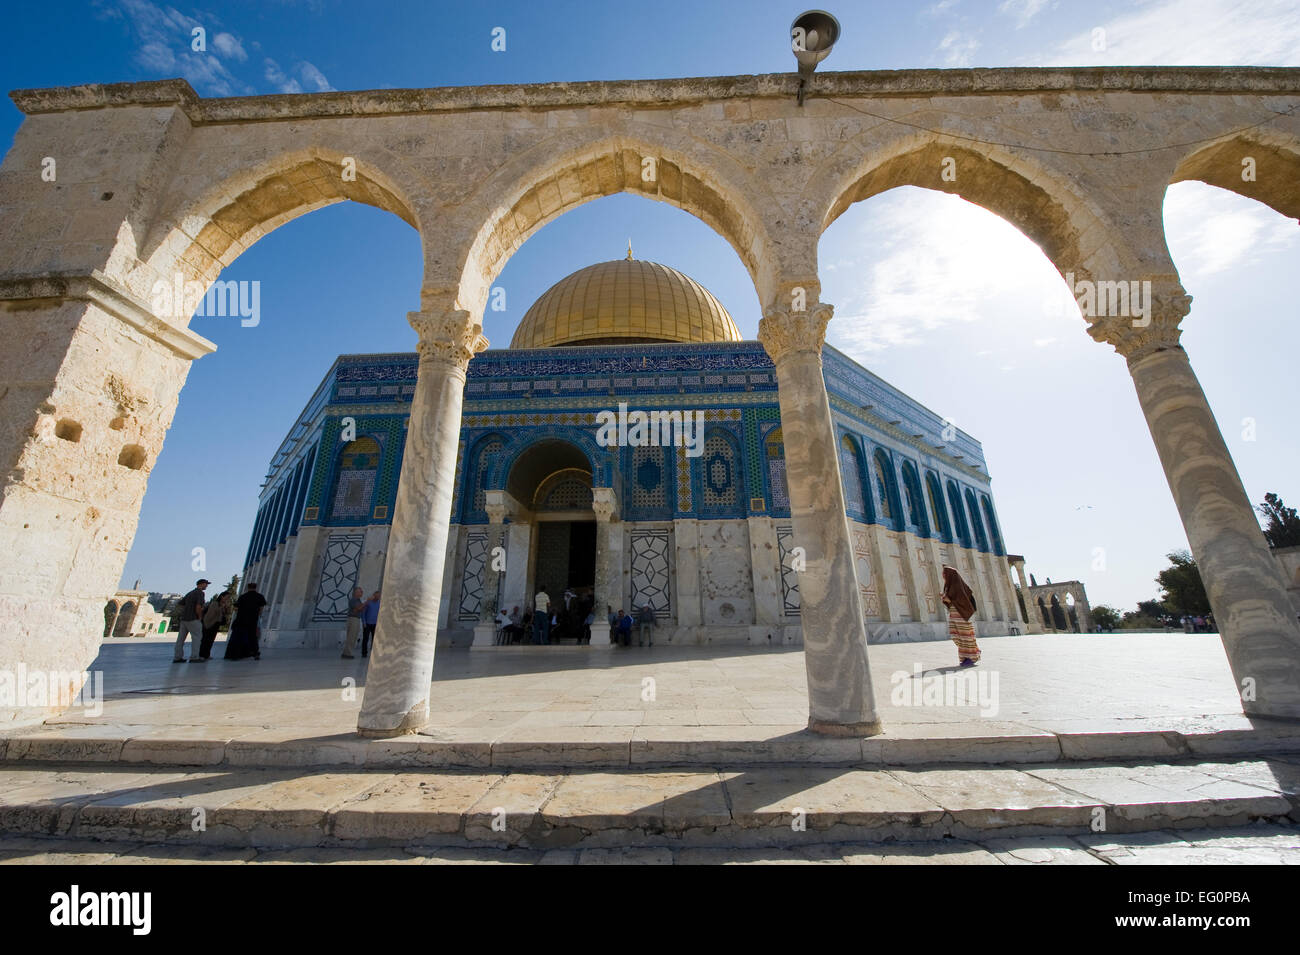 Dome of the rock on the Temple Mount in Jerusalem Stock Photo